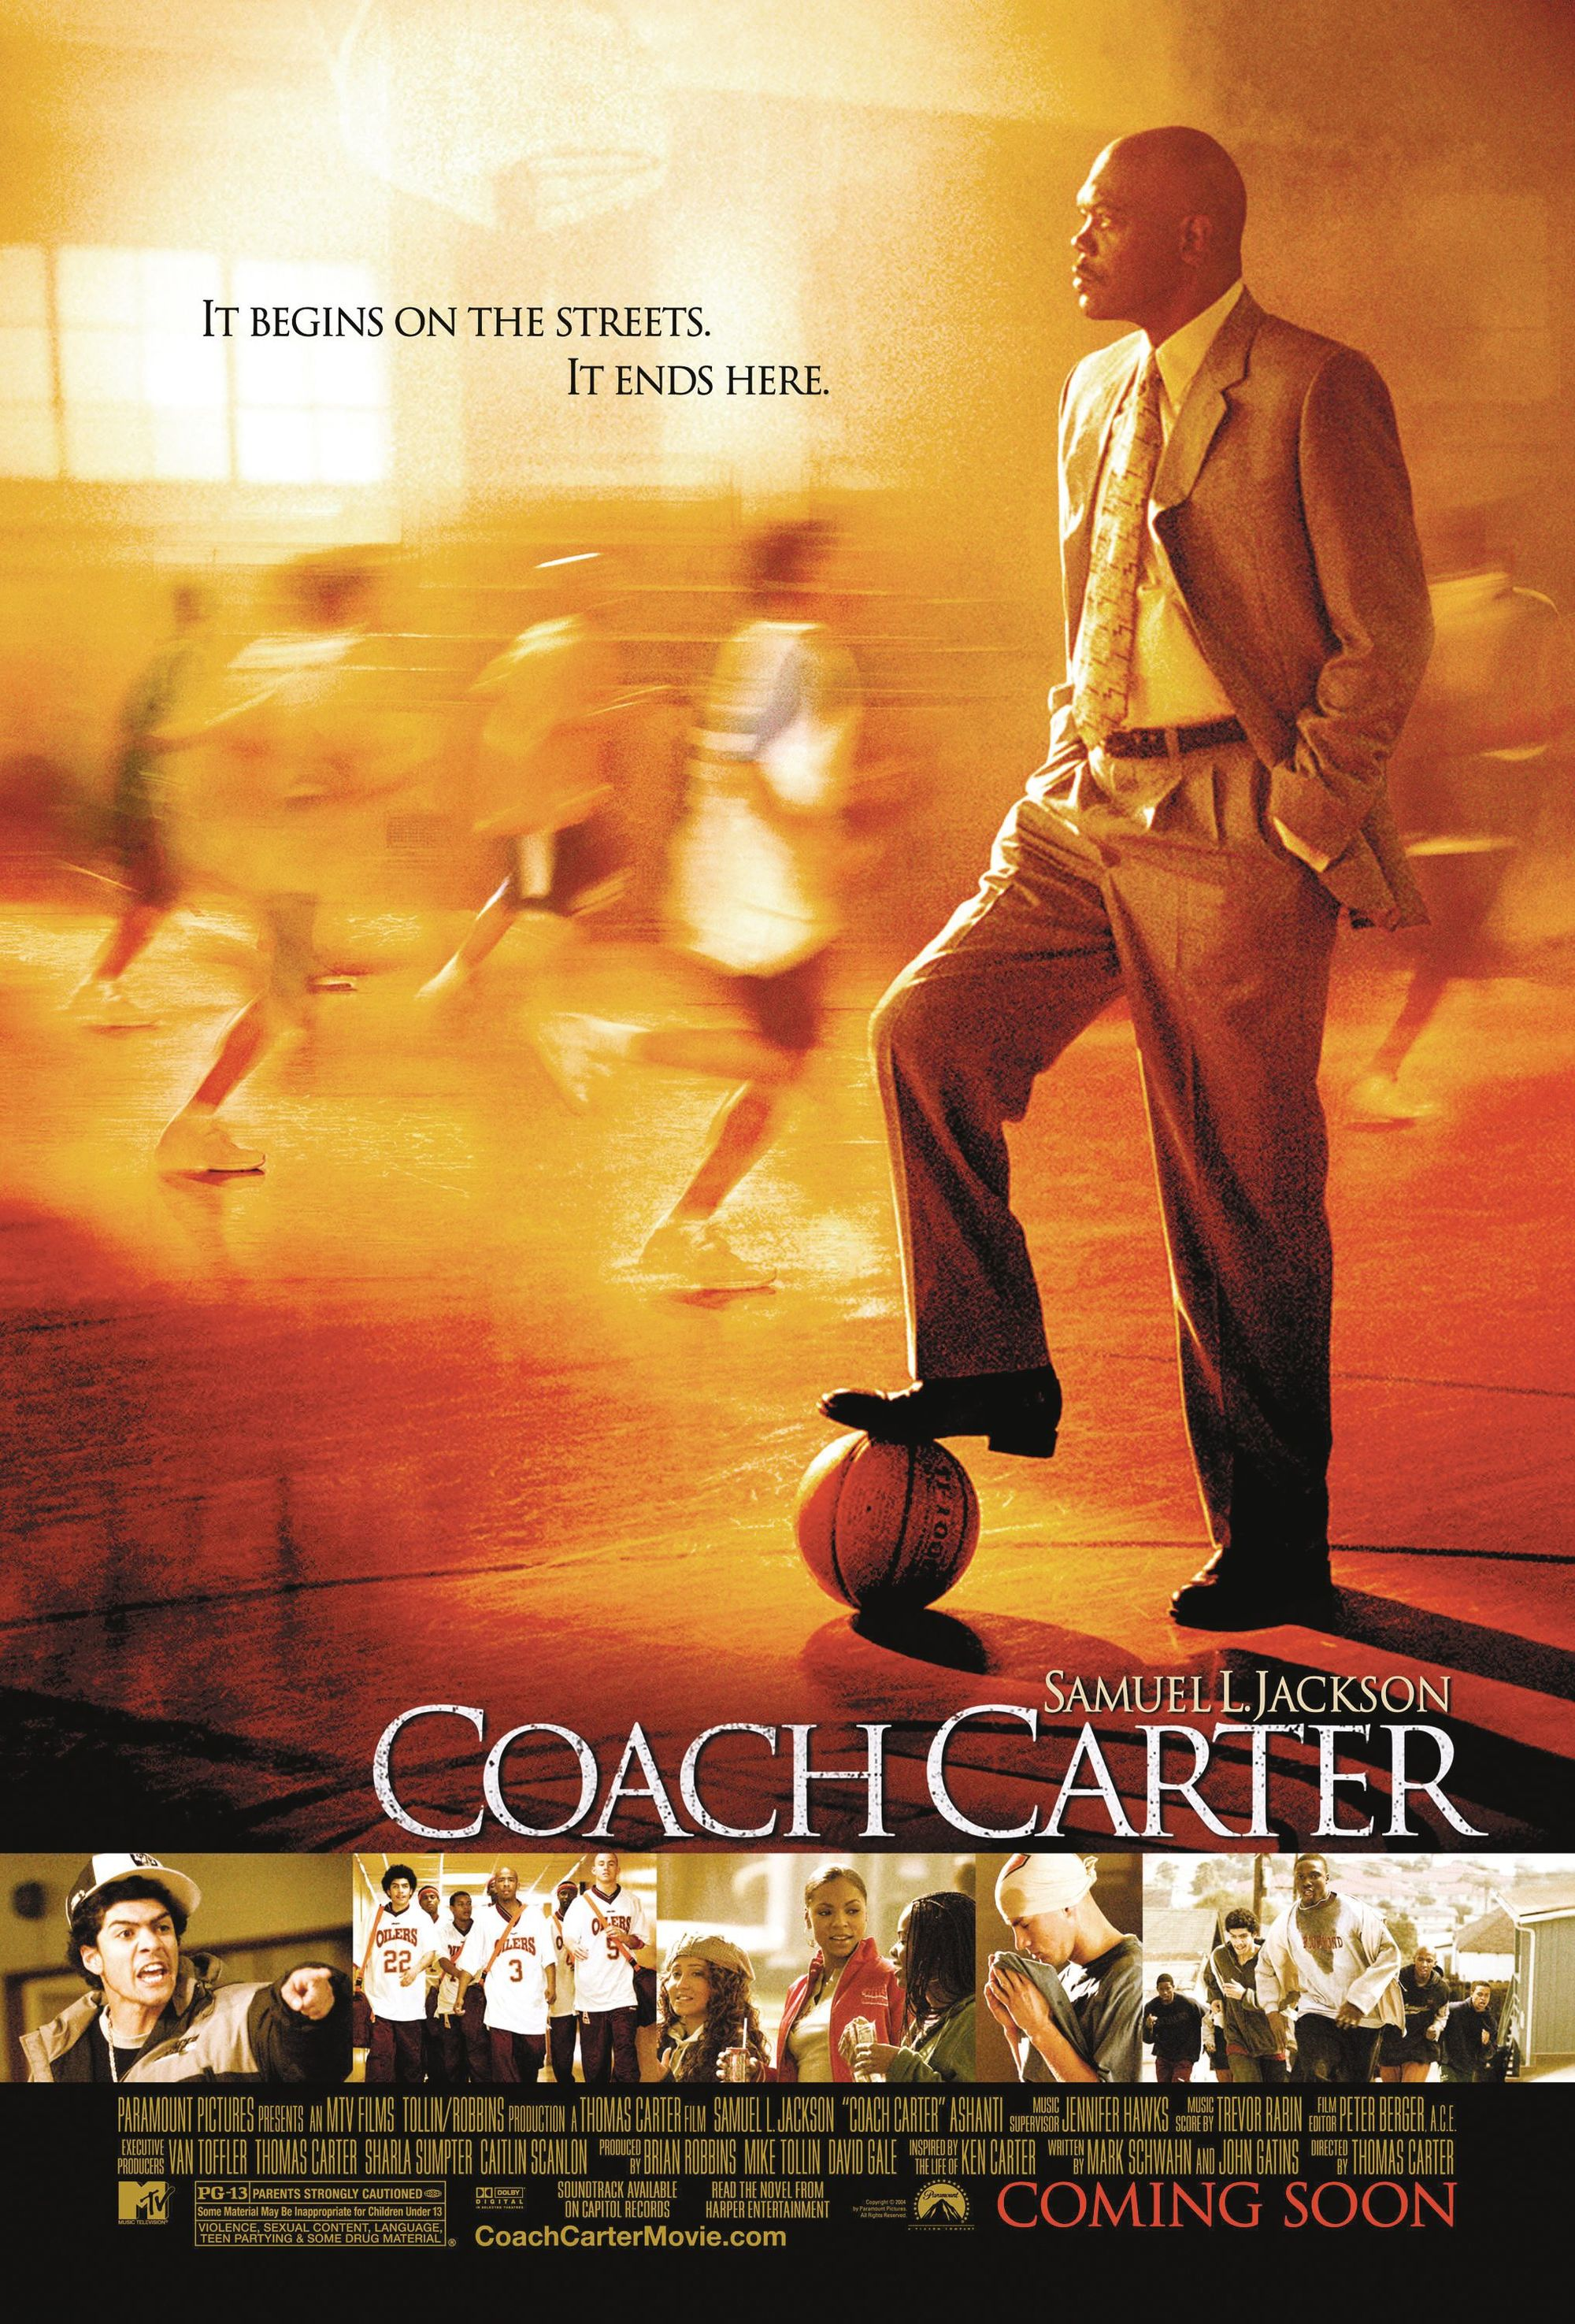 Coach Carter, by Thomas Carter, 2005.